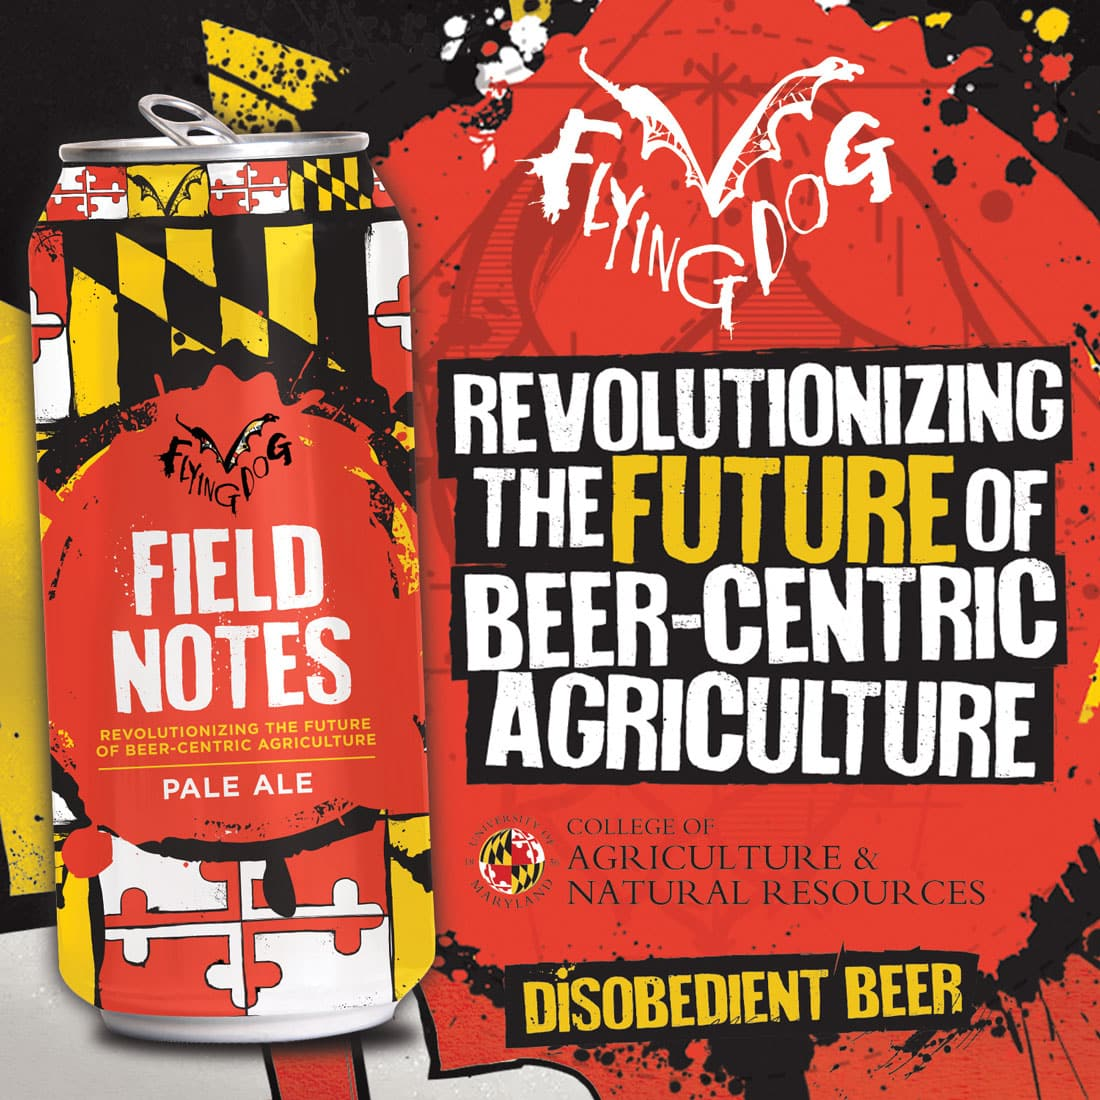 Field Notes. Revolutionizing the future of beer-centric agriculture